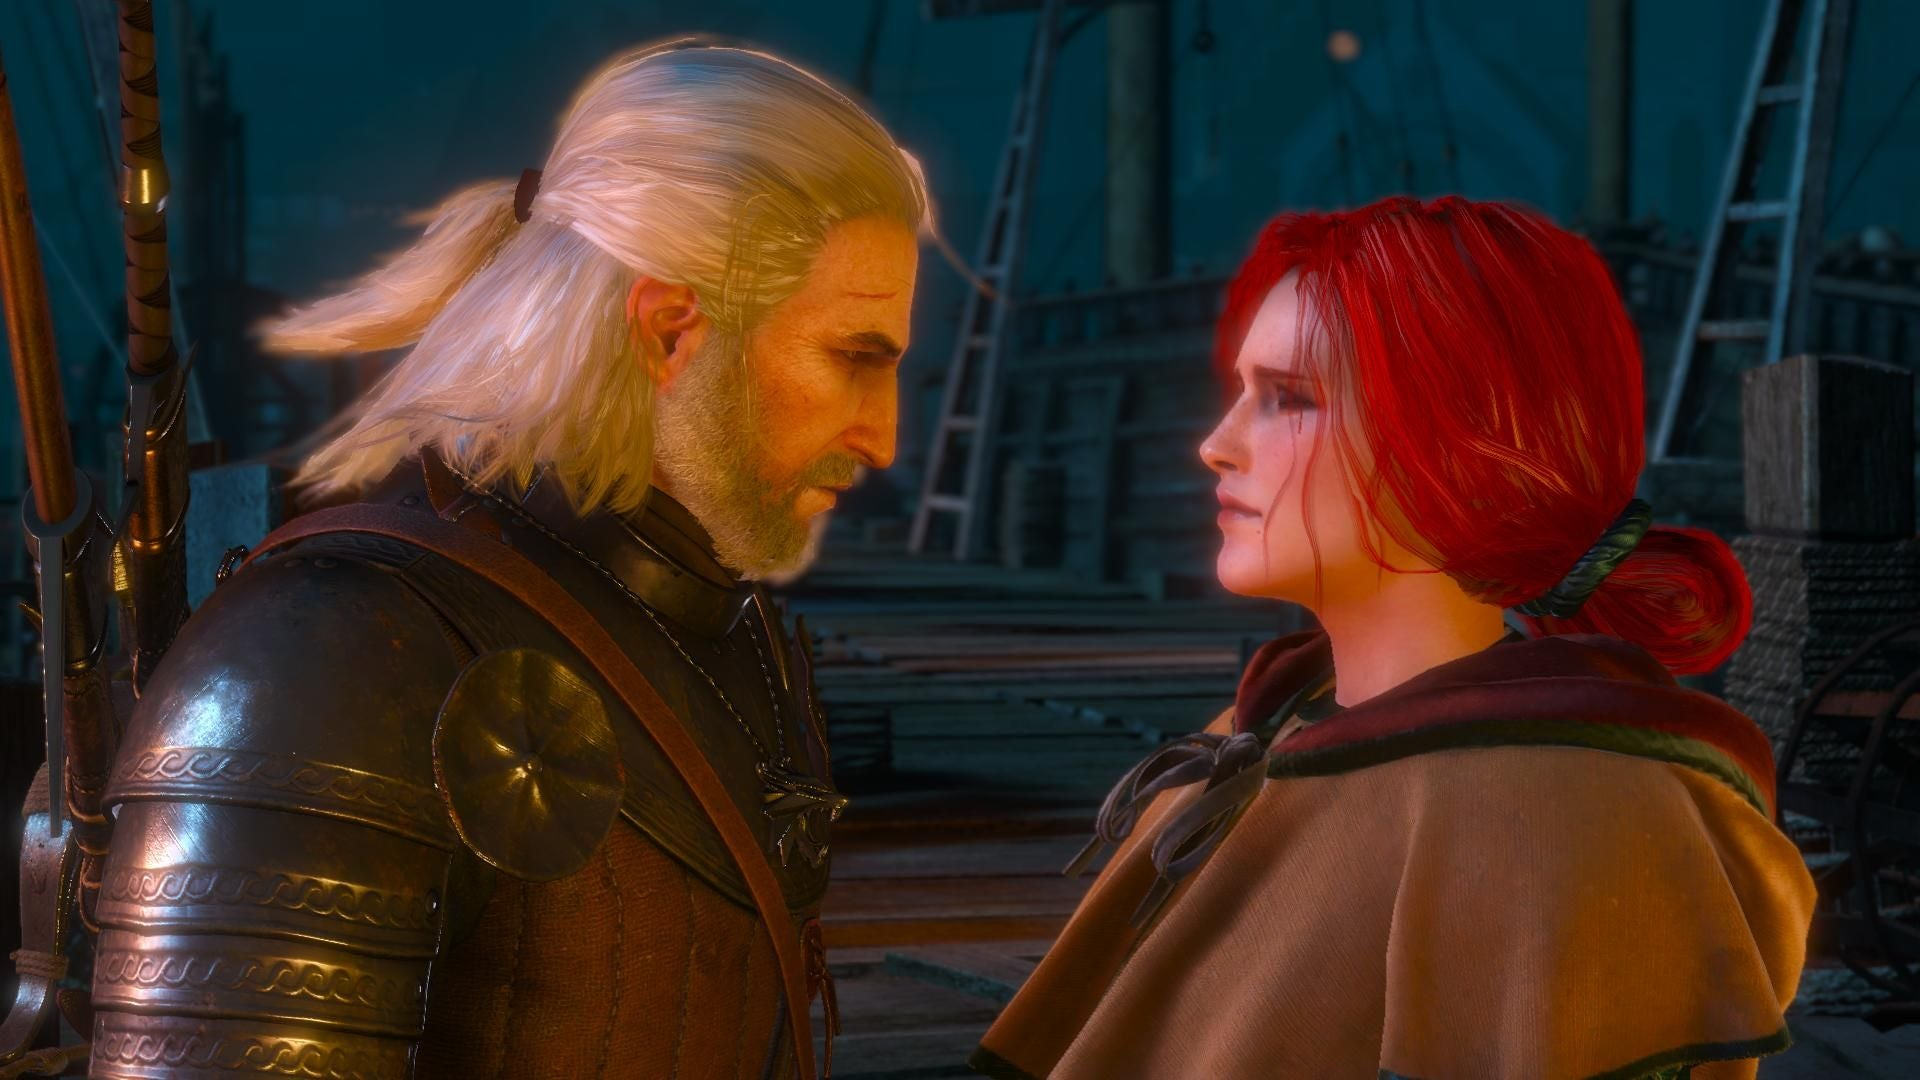 My Issues With Relationships Ruined A Witcher 3 Playthrough